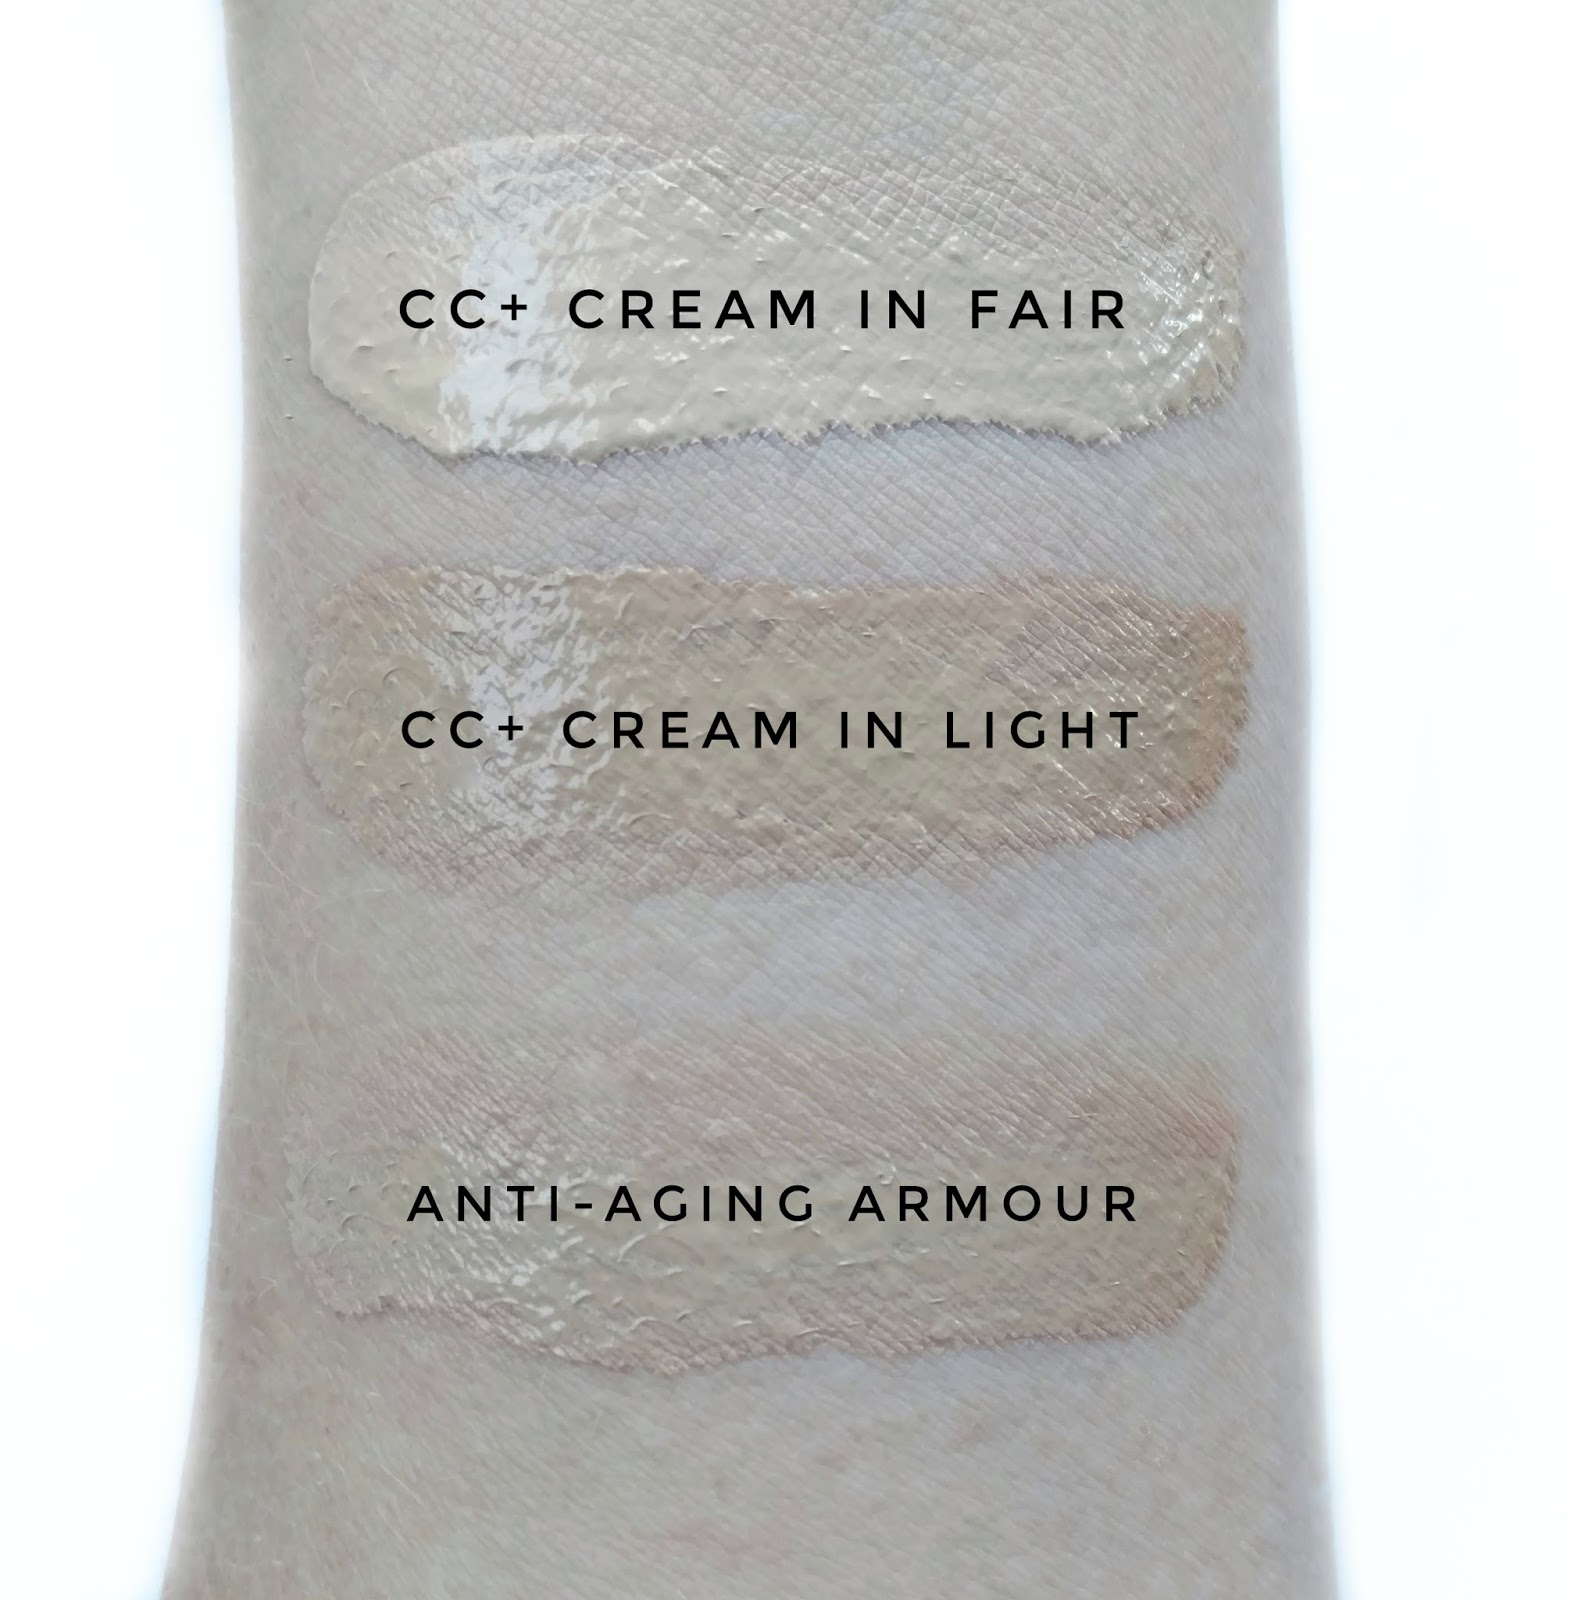 Anti Aging Armour by IT Cosmetics #12